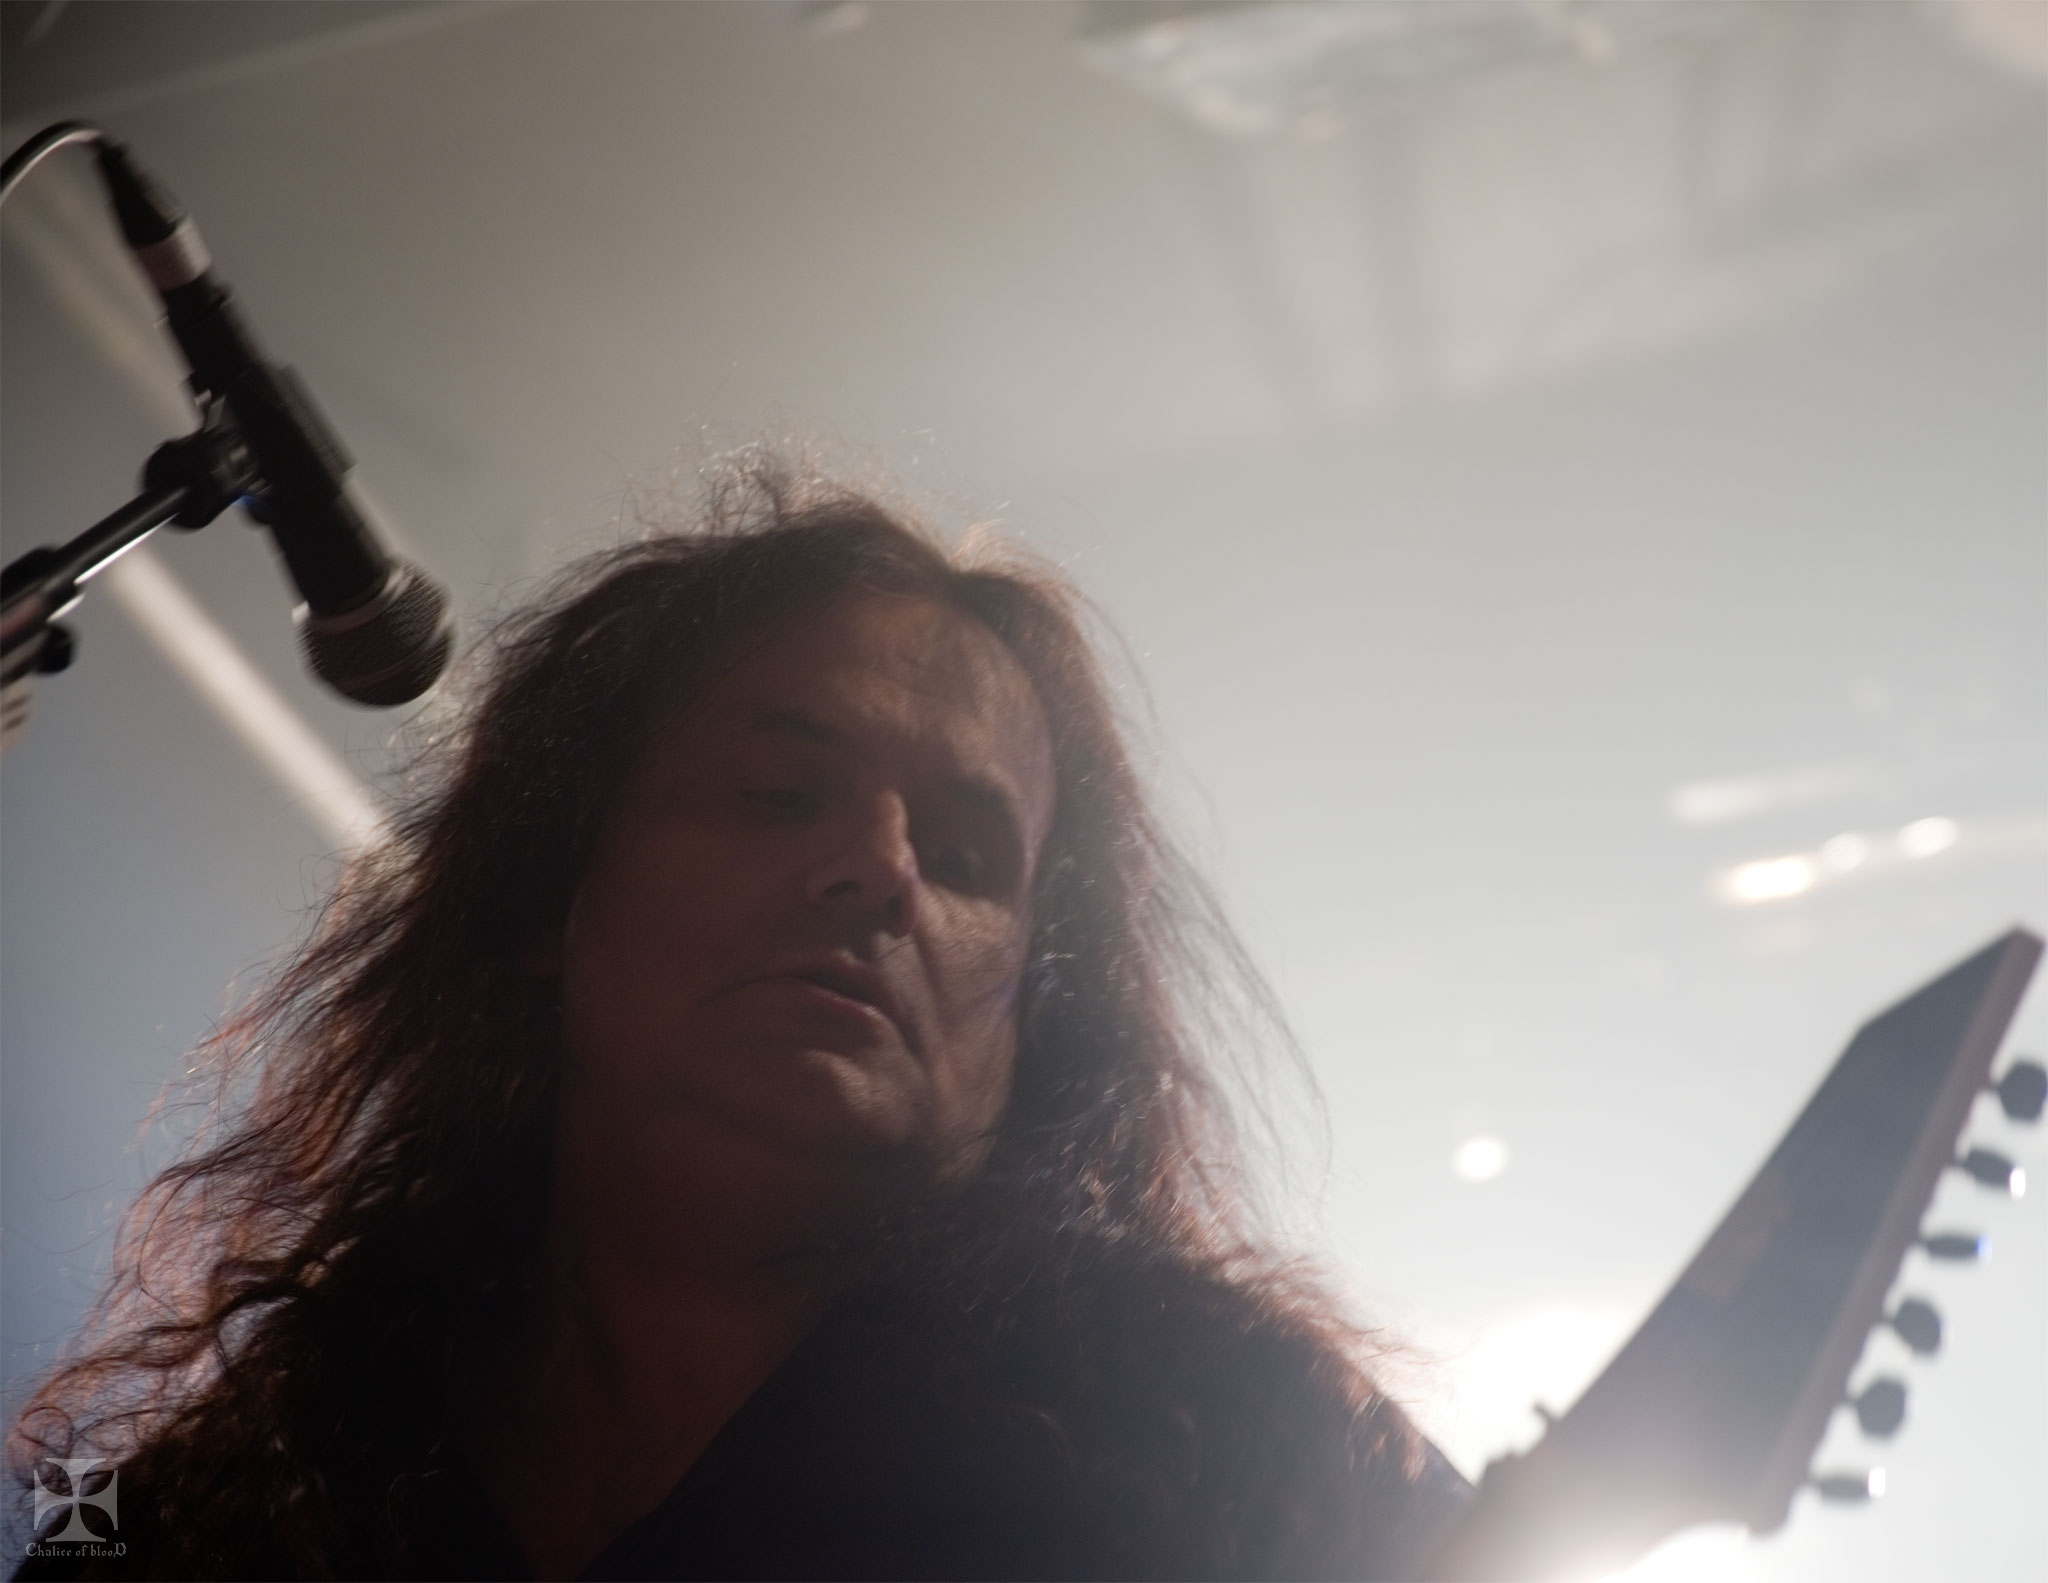 Kreator-0060-Exposure-watermarked.jpg